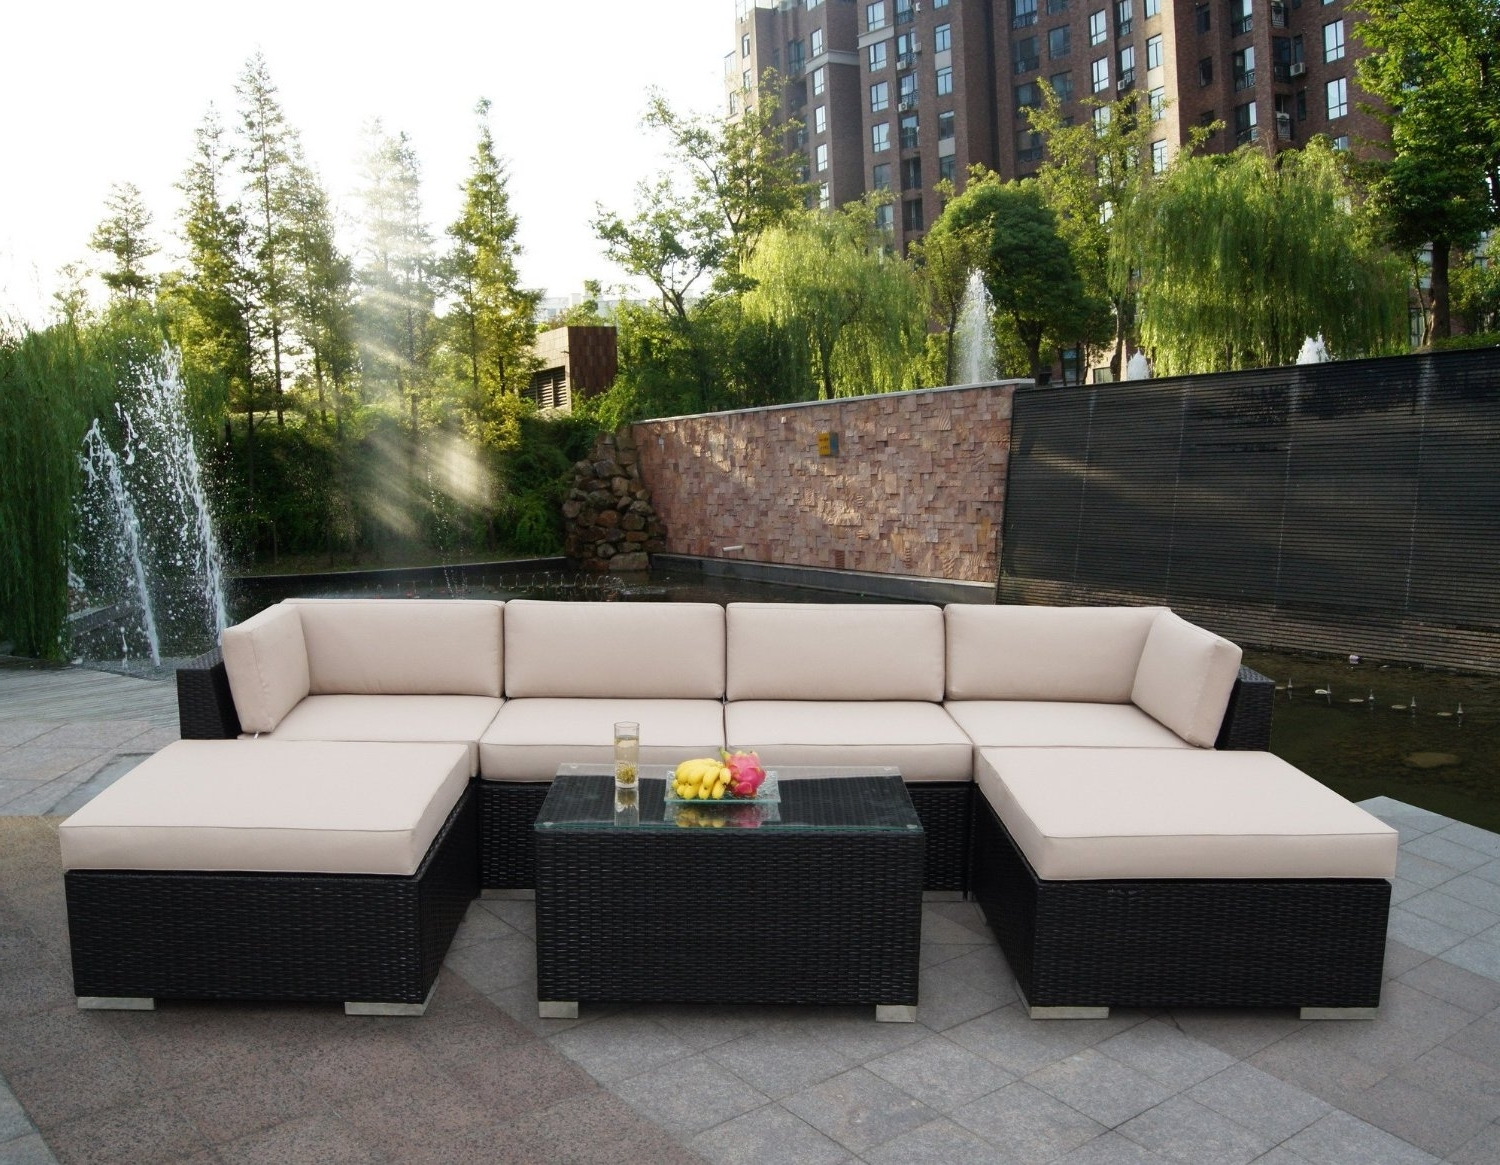 Patio Sofas Intended For Preferred Enjoy Having Outdoor Patio Sets At Your Lawn – Bellissimainteriors (View 9 of 20)